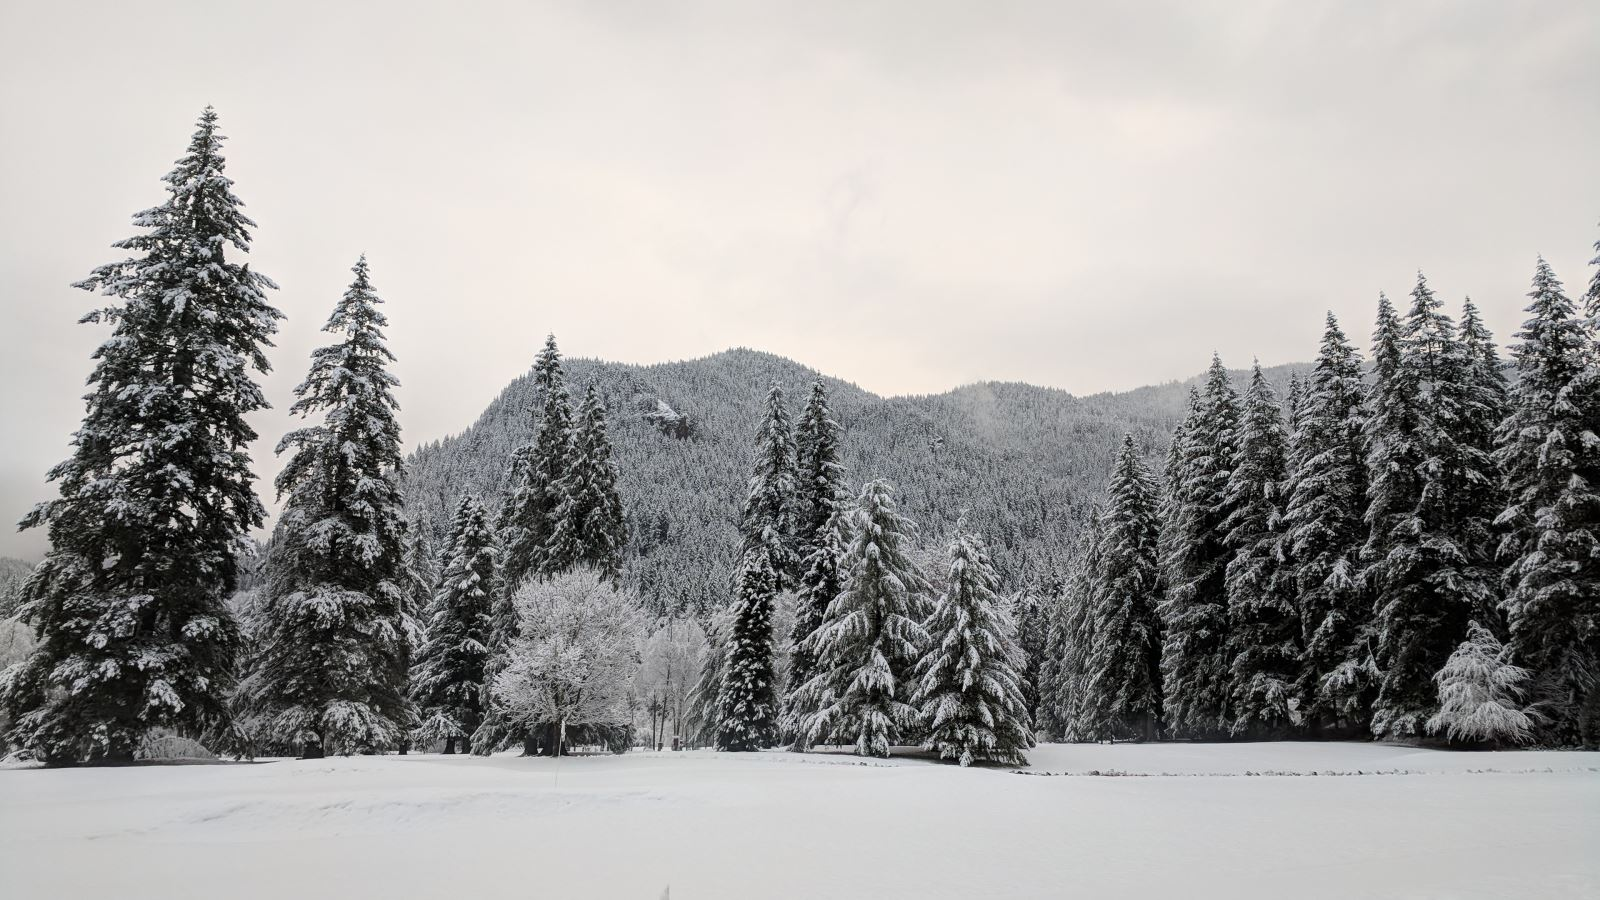 First Snow Welches Oregon near the Resort at the Mountain Golf Course